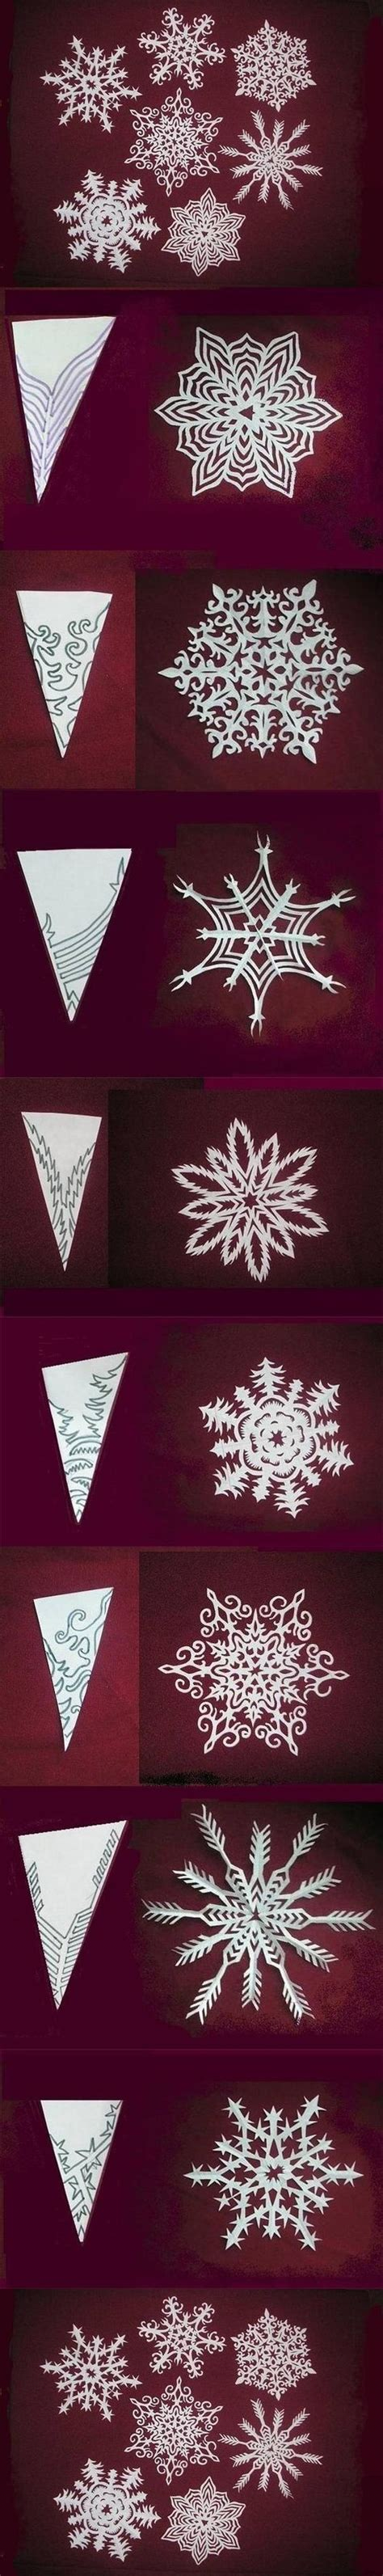 Paper Snowflakes Patterns - wonderful diy paper snowflakes with pattern snow